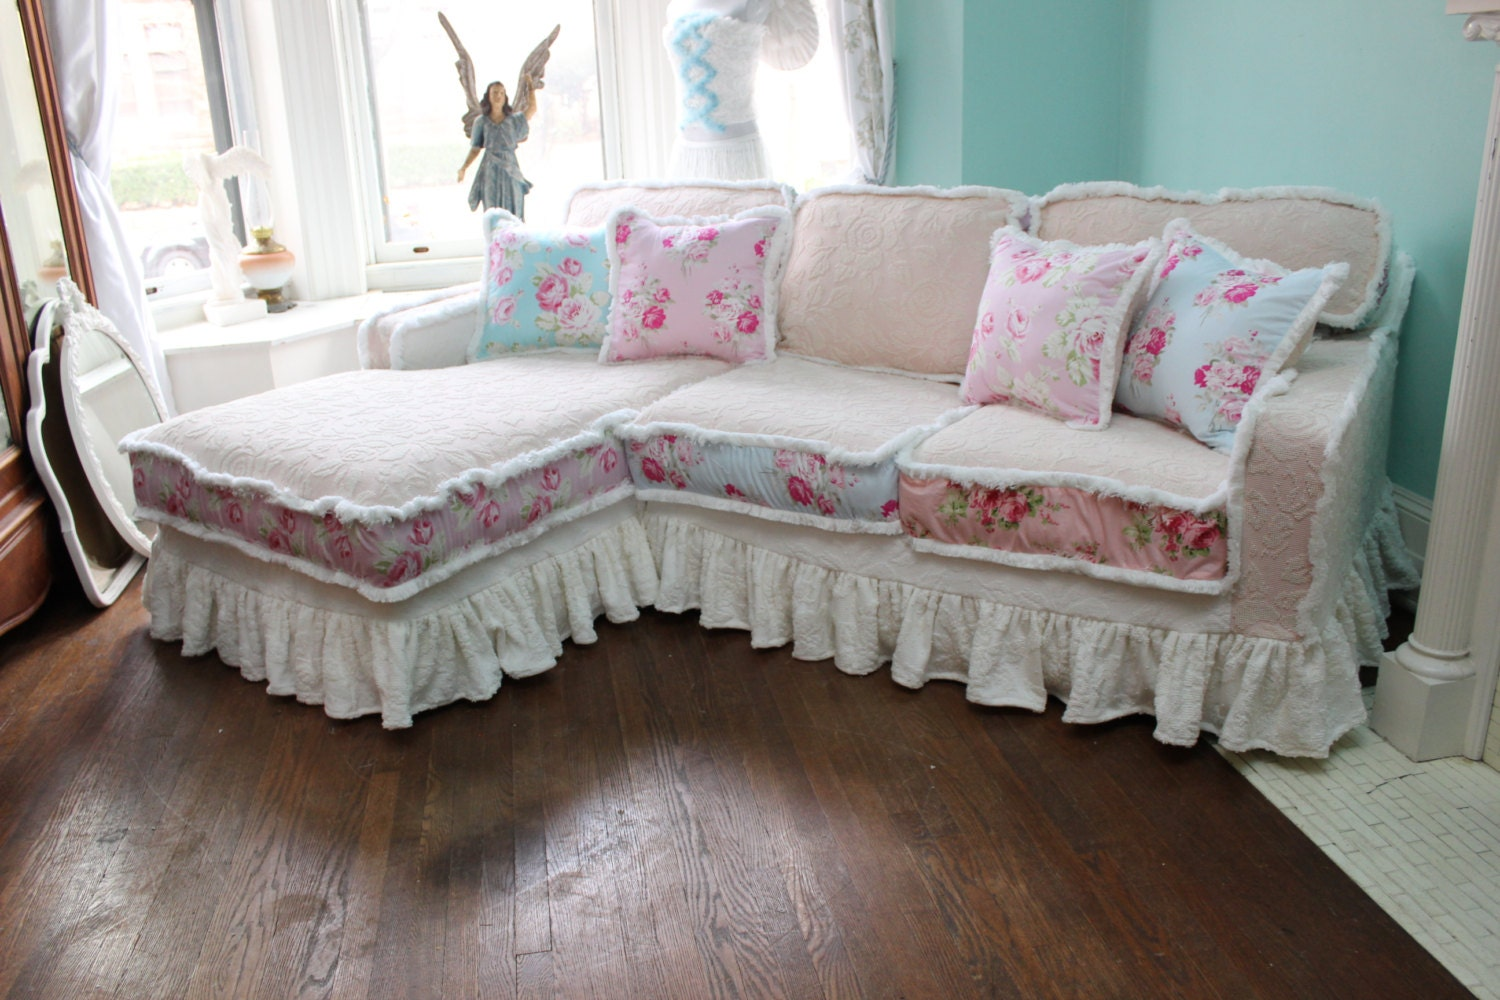 shabby chic sectional sofa vintage rose by vintagechicfurniture. Black Bedroom Furniture Sets. Home Design Ideas